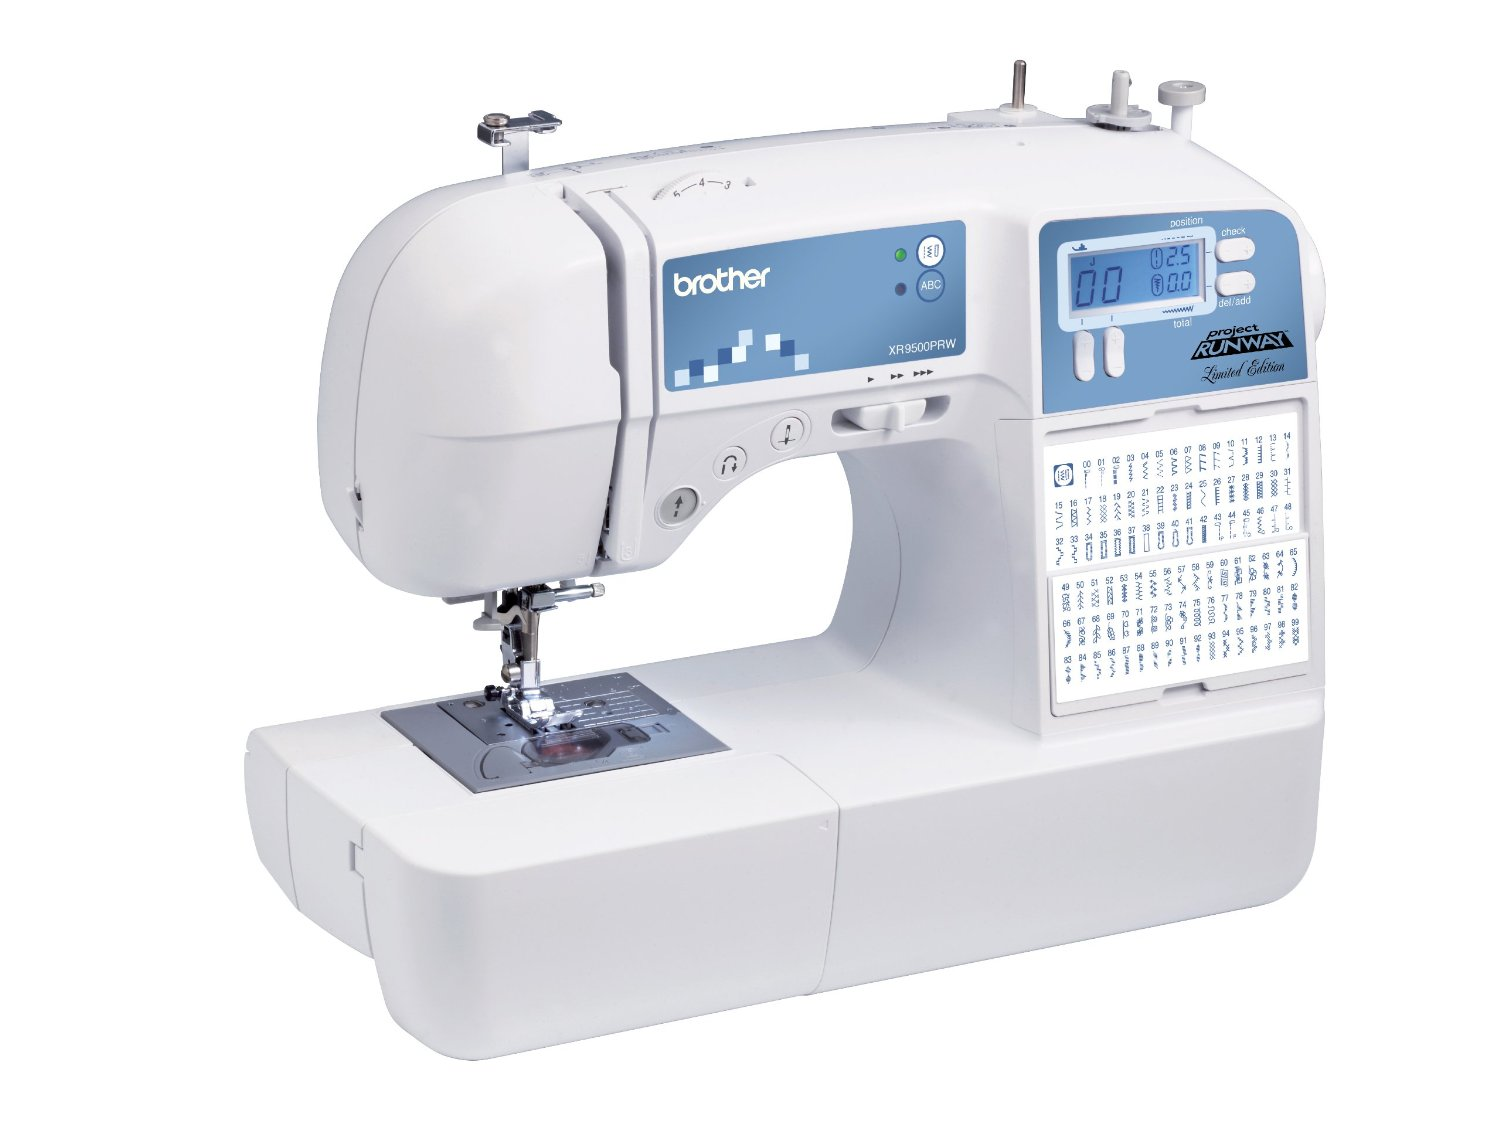 Brother XR9500PRW Limited Edition Project Runway Sewing Machine